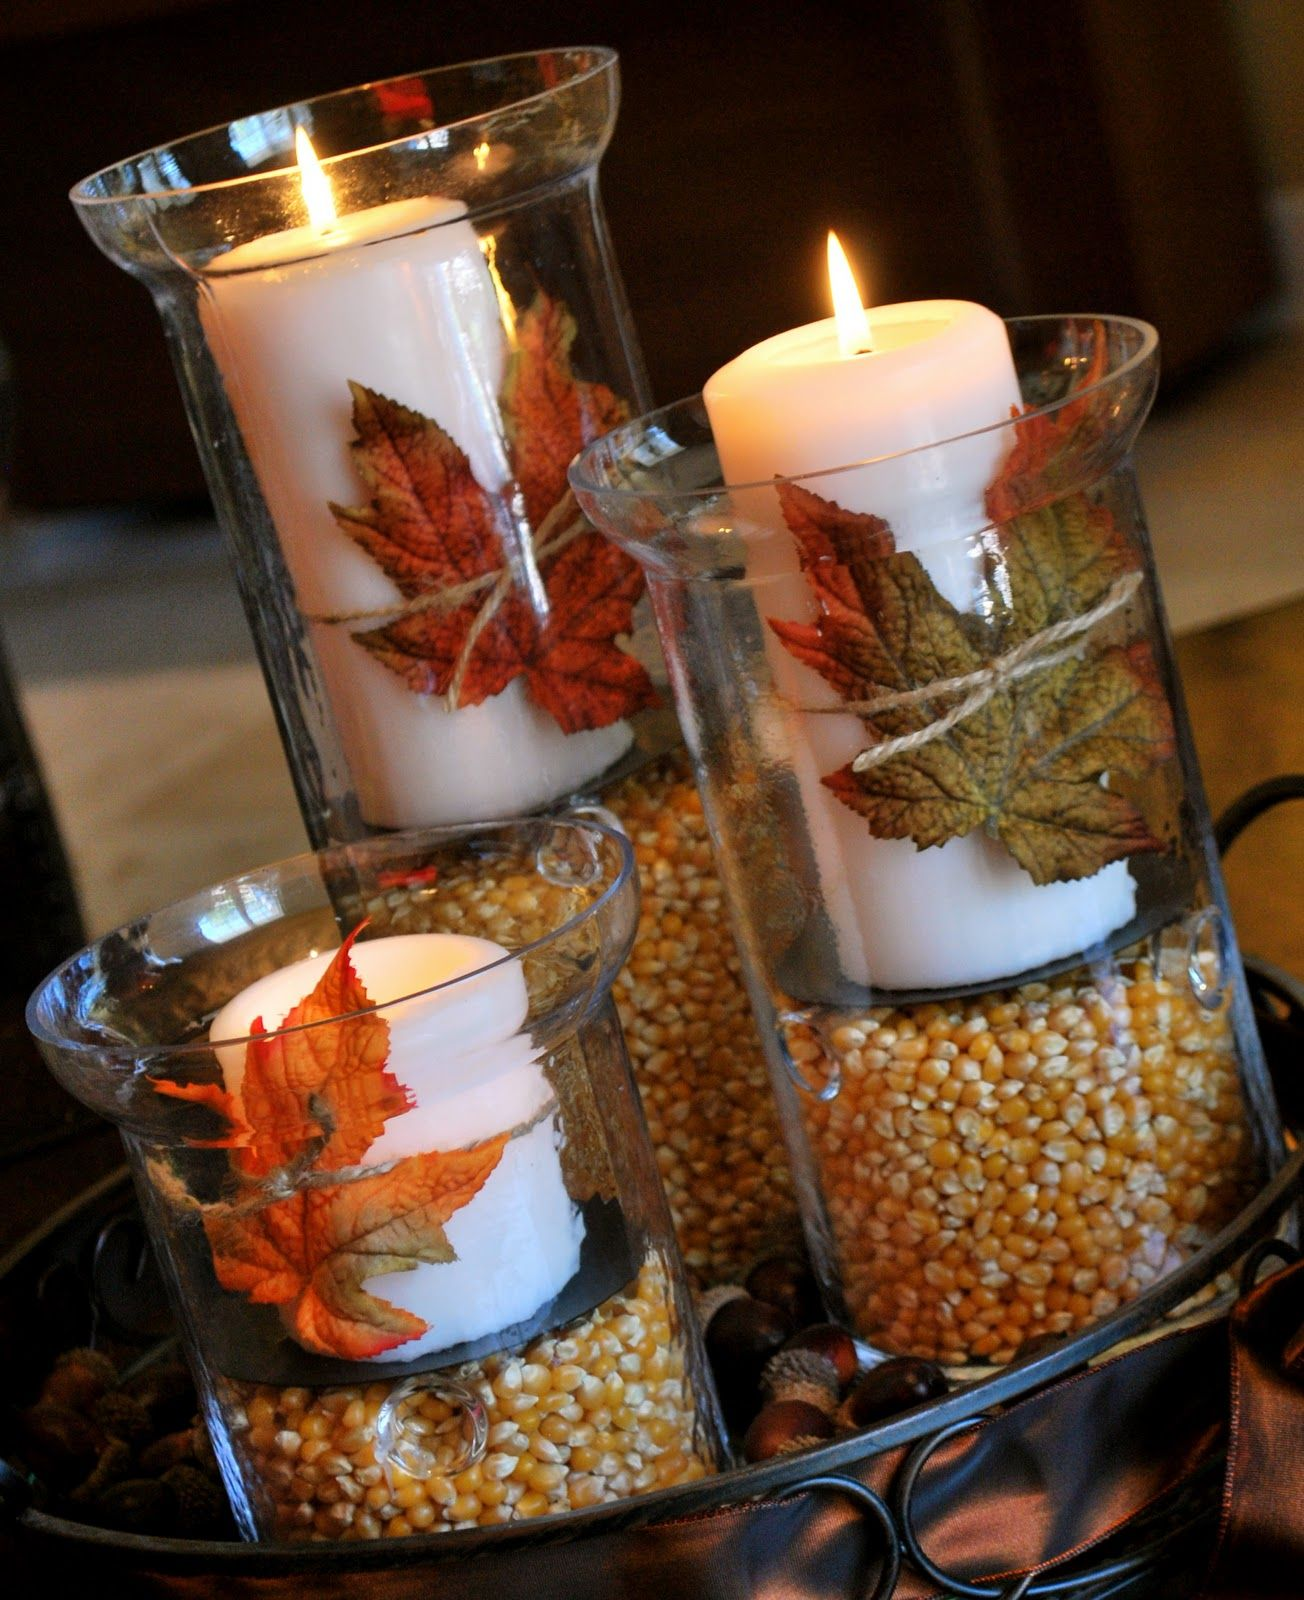 #decor #idea #fall #wedding #autumn #DIY (Idea you. Thanksgiving IdeasHoliday ... & decor #idea #fall #wedding #autumn #DIY (Idea: you could use multi ...